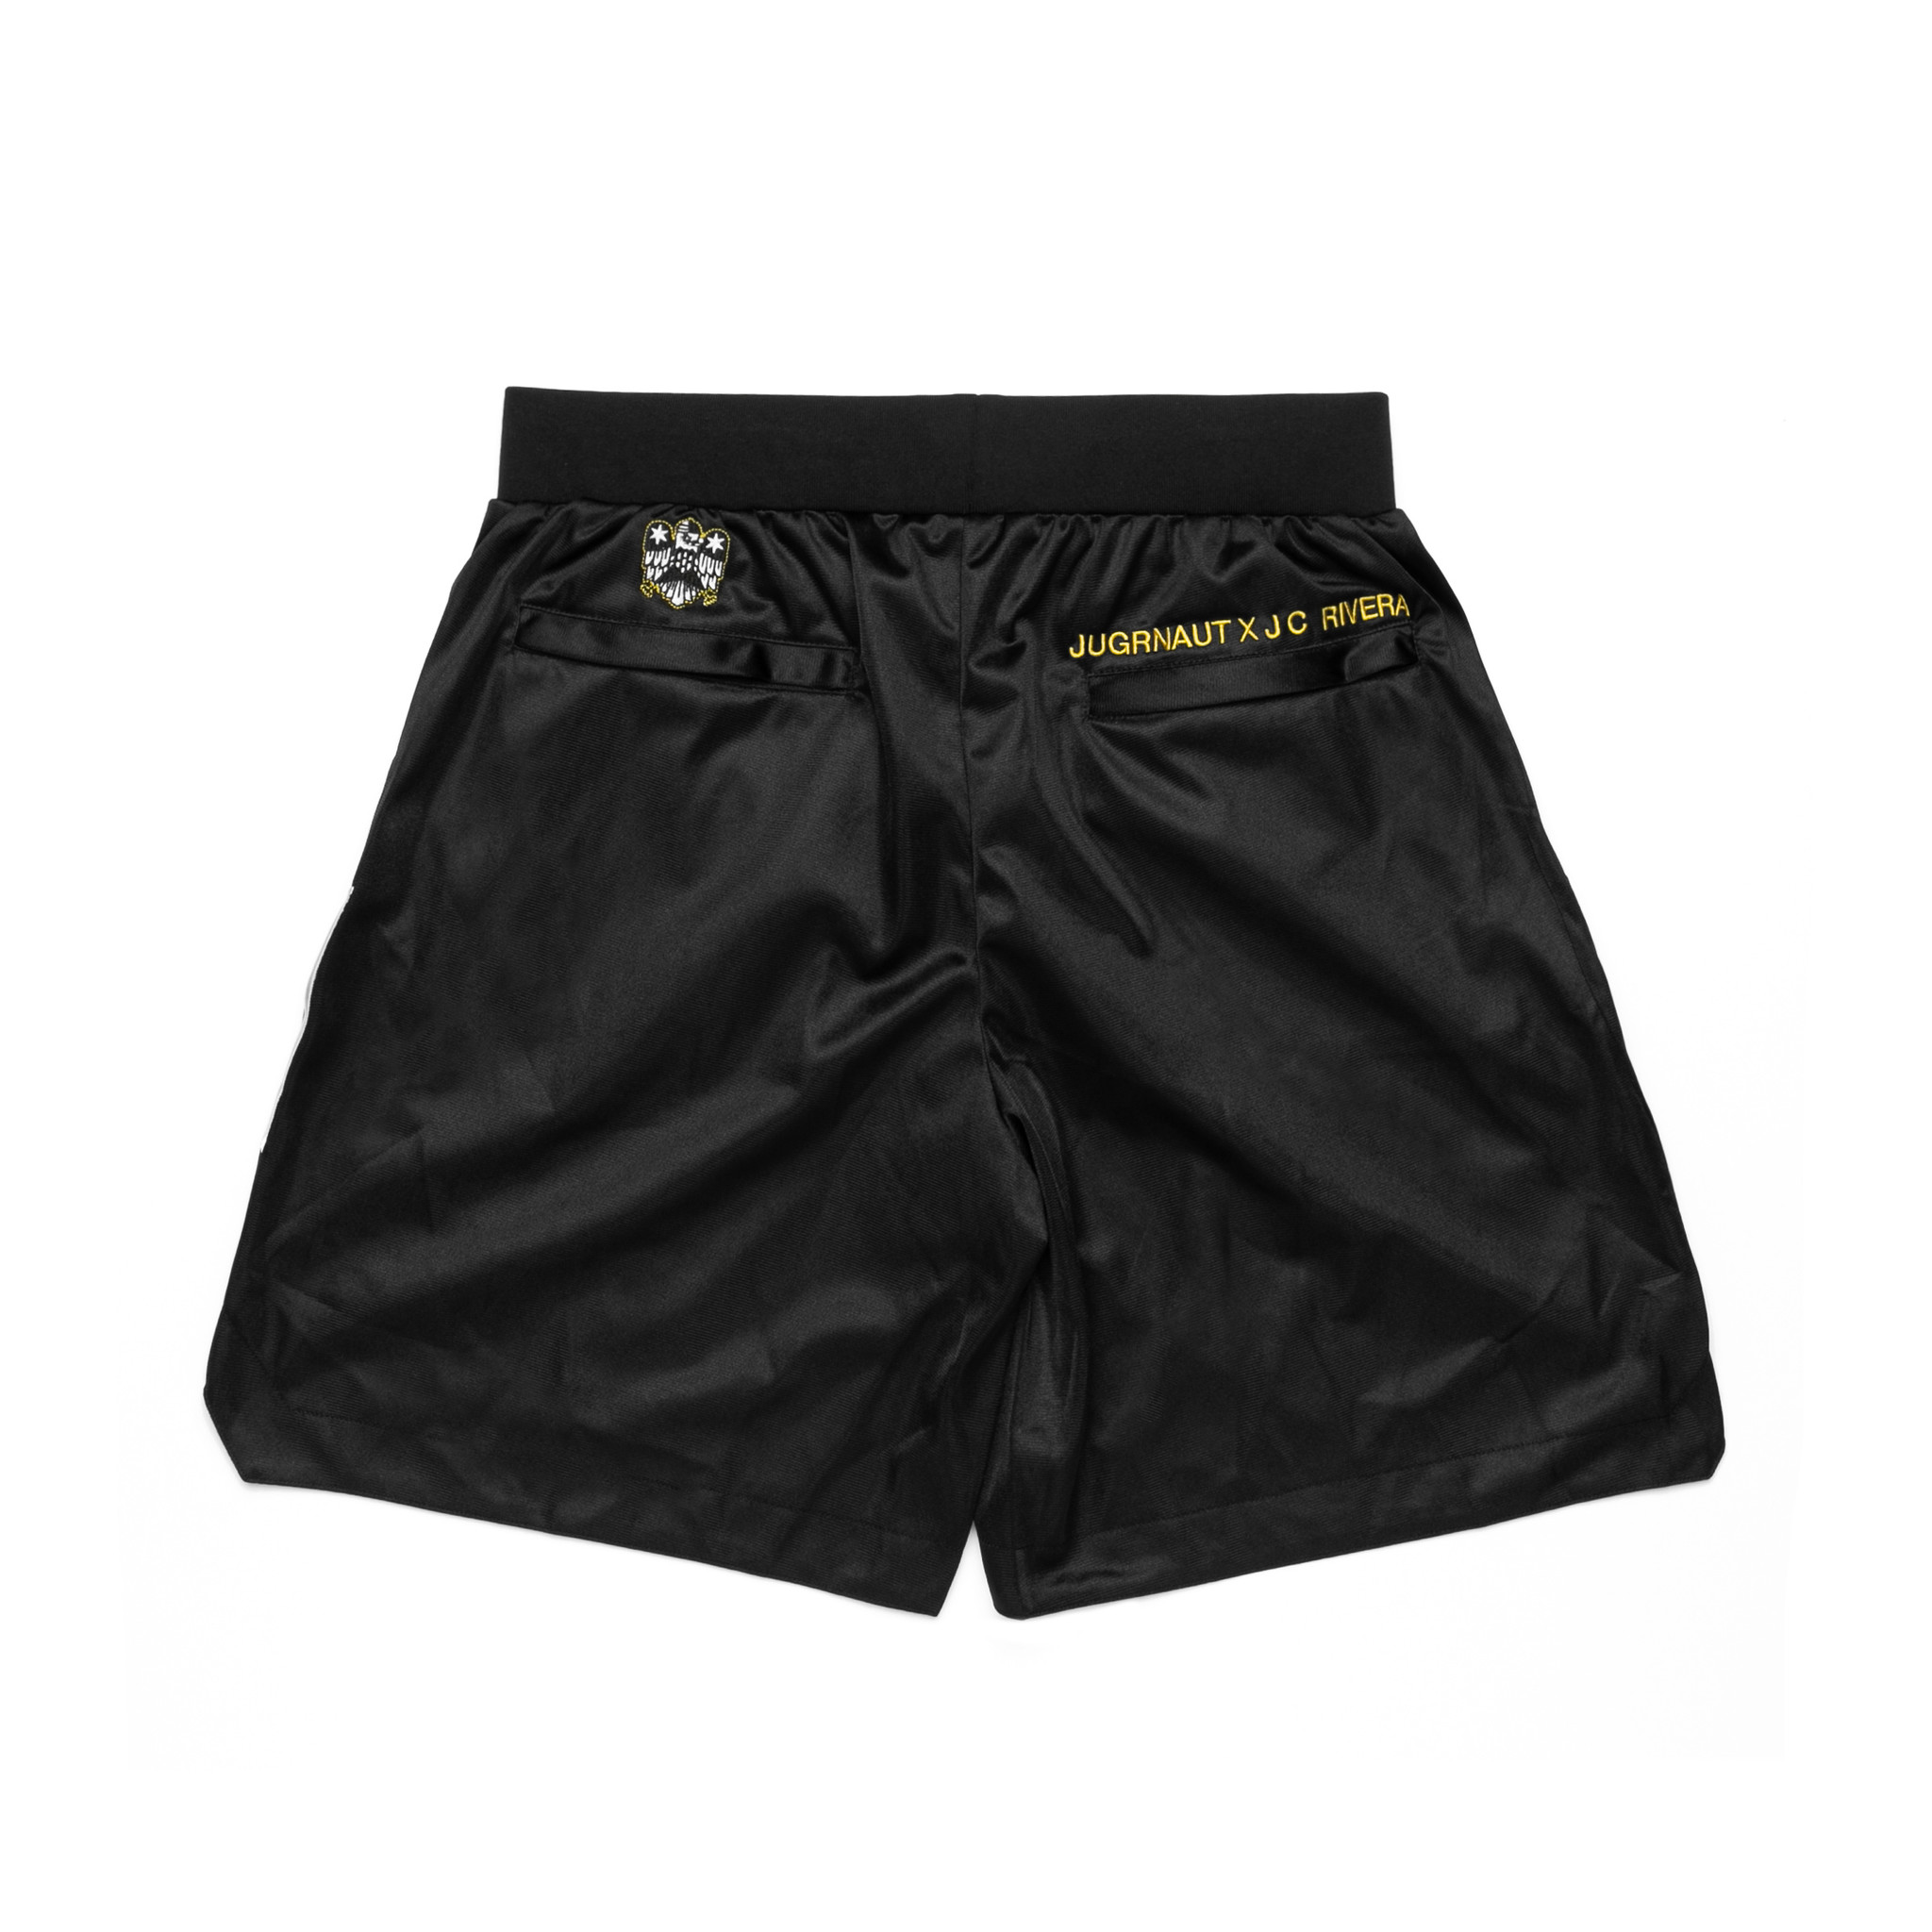 Jugrnaut Jugrnaut x J.C. Rivera x All Star Press Shorts Black